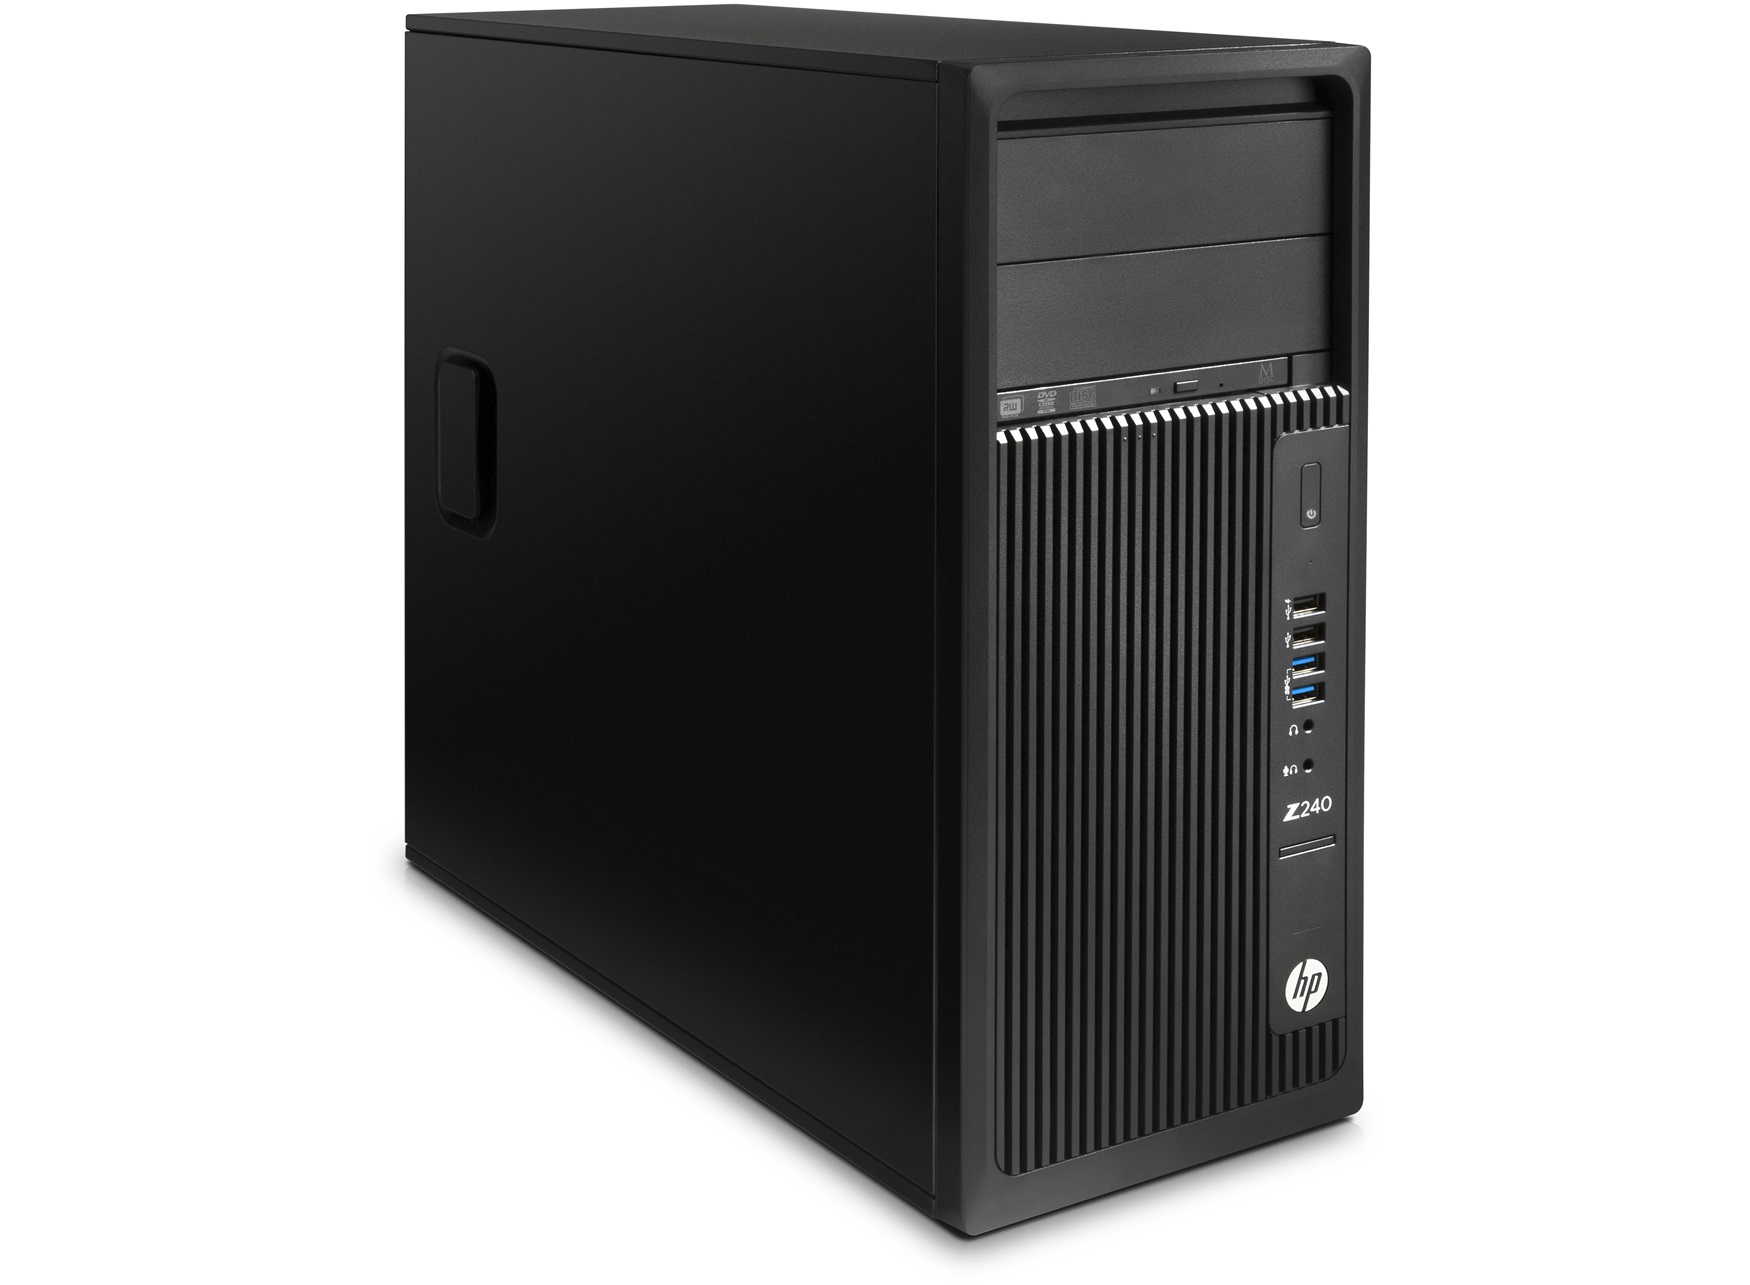 HP Z240 TWR Intel i7-6700 3.4GHz/8GB DDR4-2133 nECC (2x4GB)/256GB SSD/Intel HD GFX 530/Win 10 Pro + Win 7 Pro